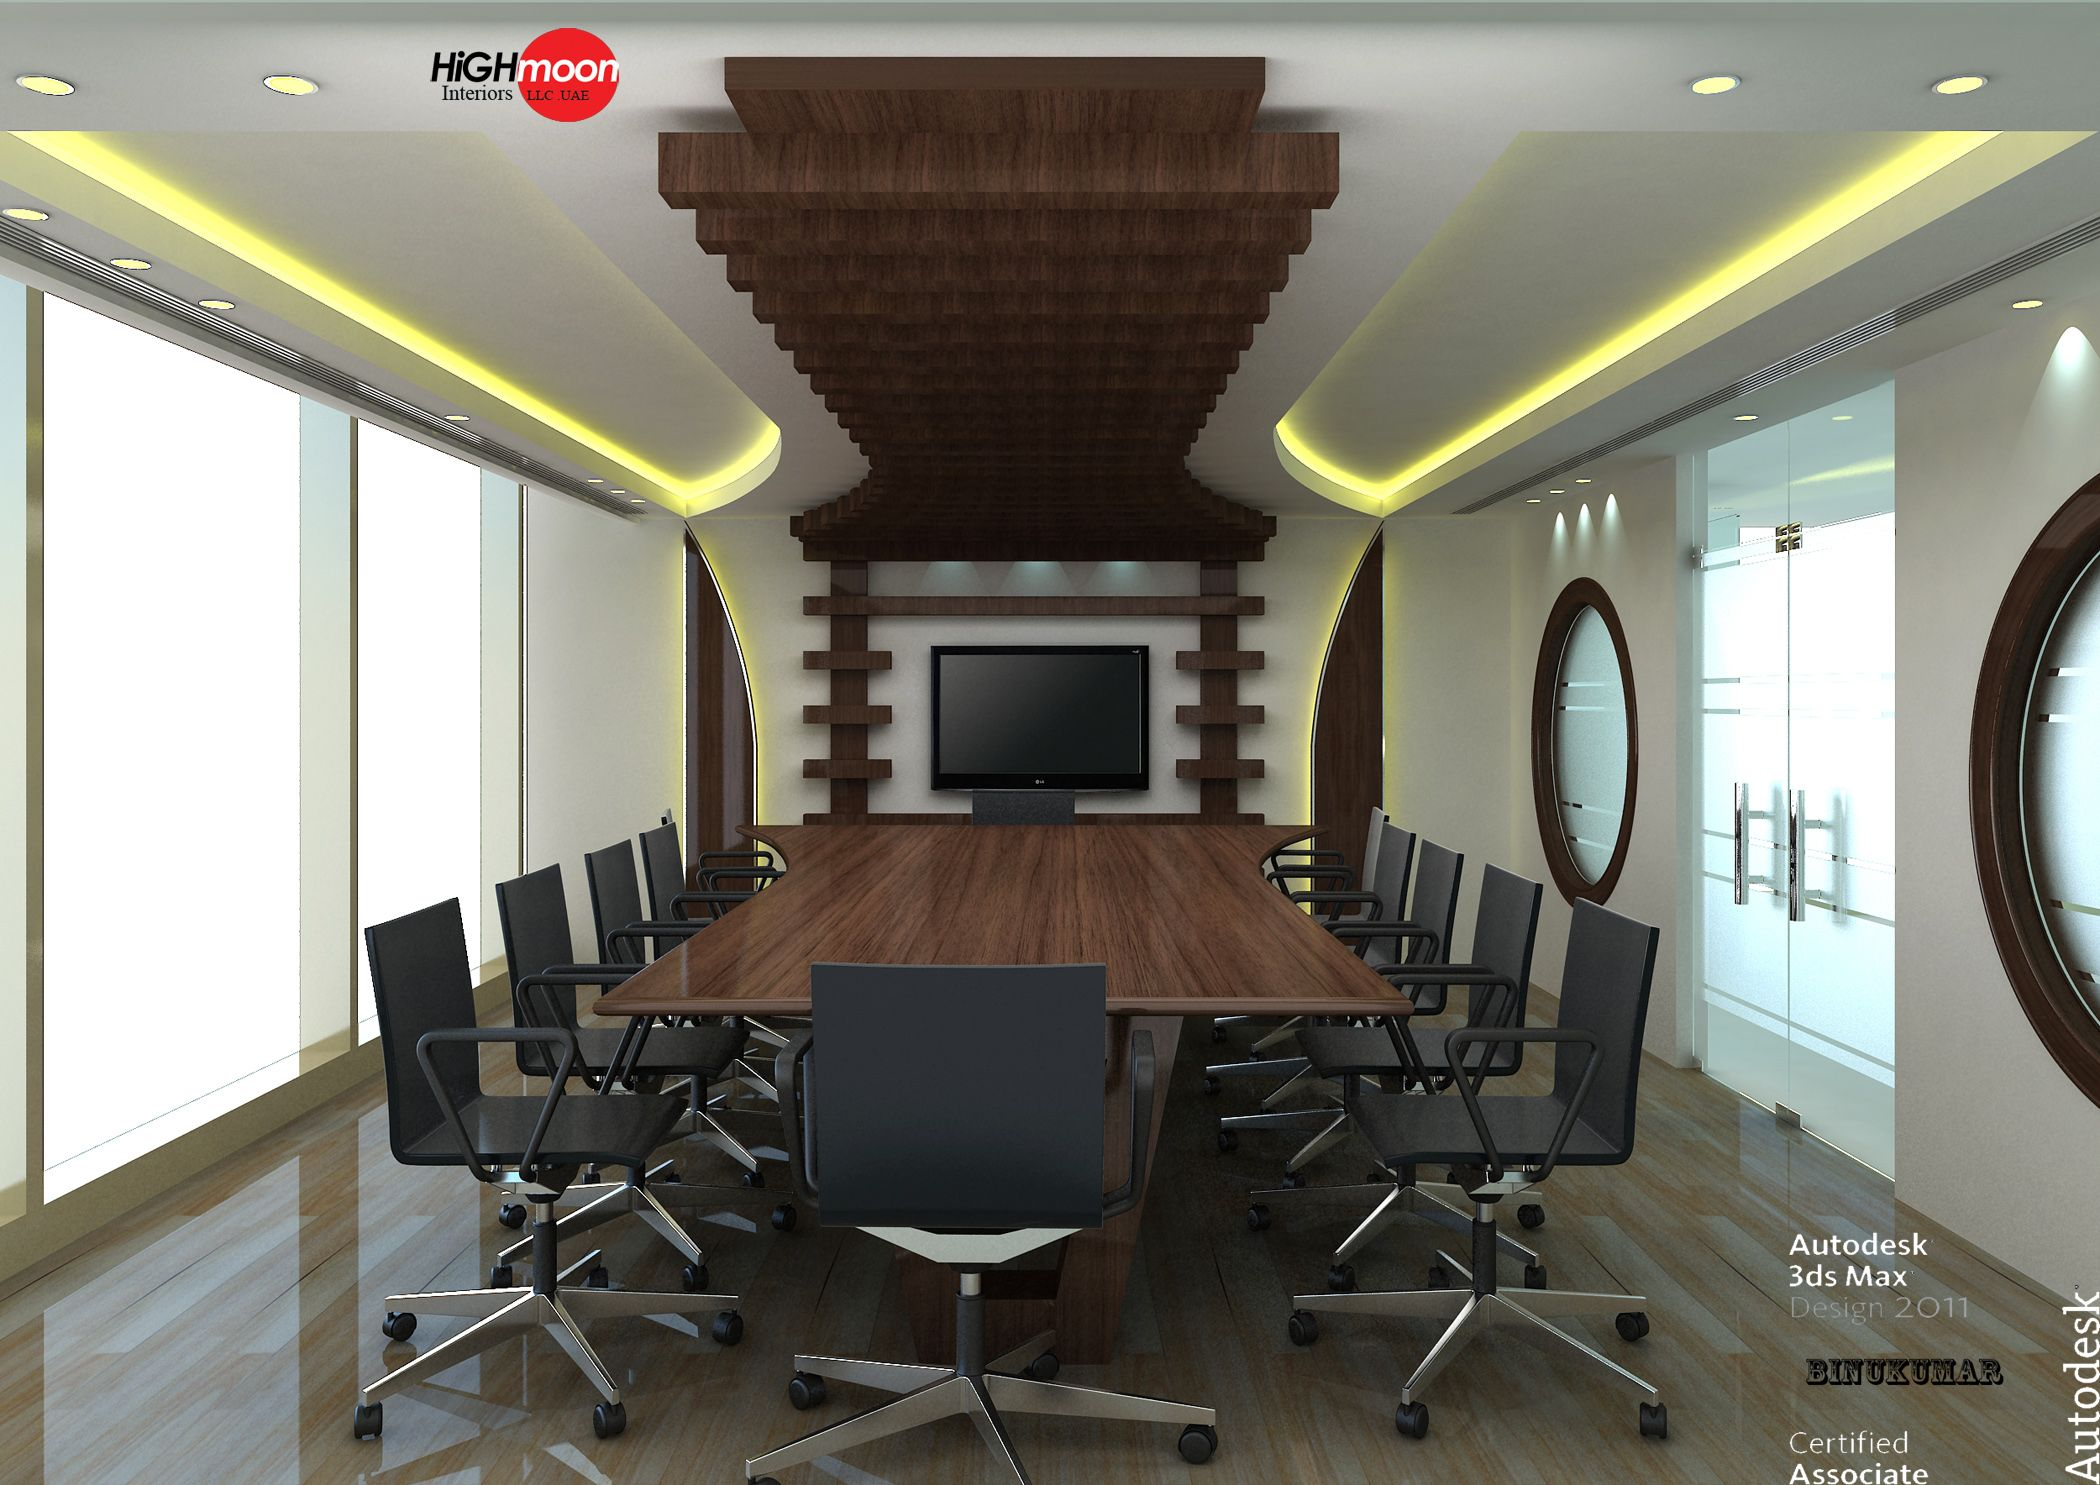 Conference Room Design Ideas large meeting room Office Meeting Room Design Inspiration With Amazing Ceiling Design Style Ideas Complete With The Yellow Lighting